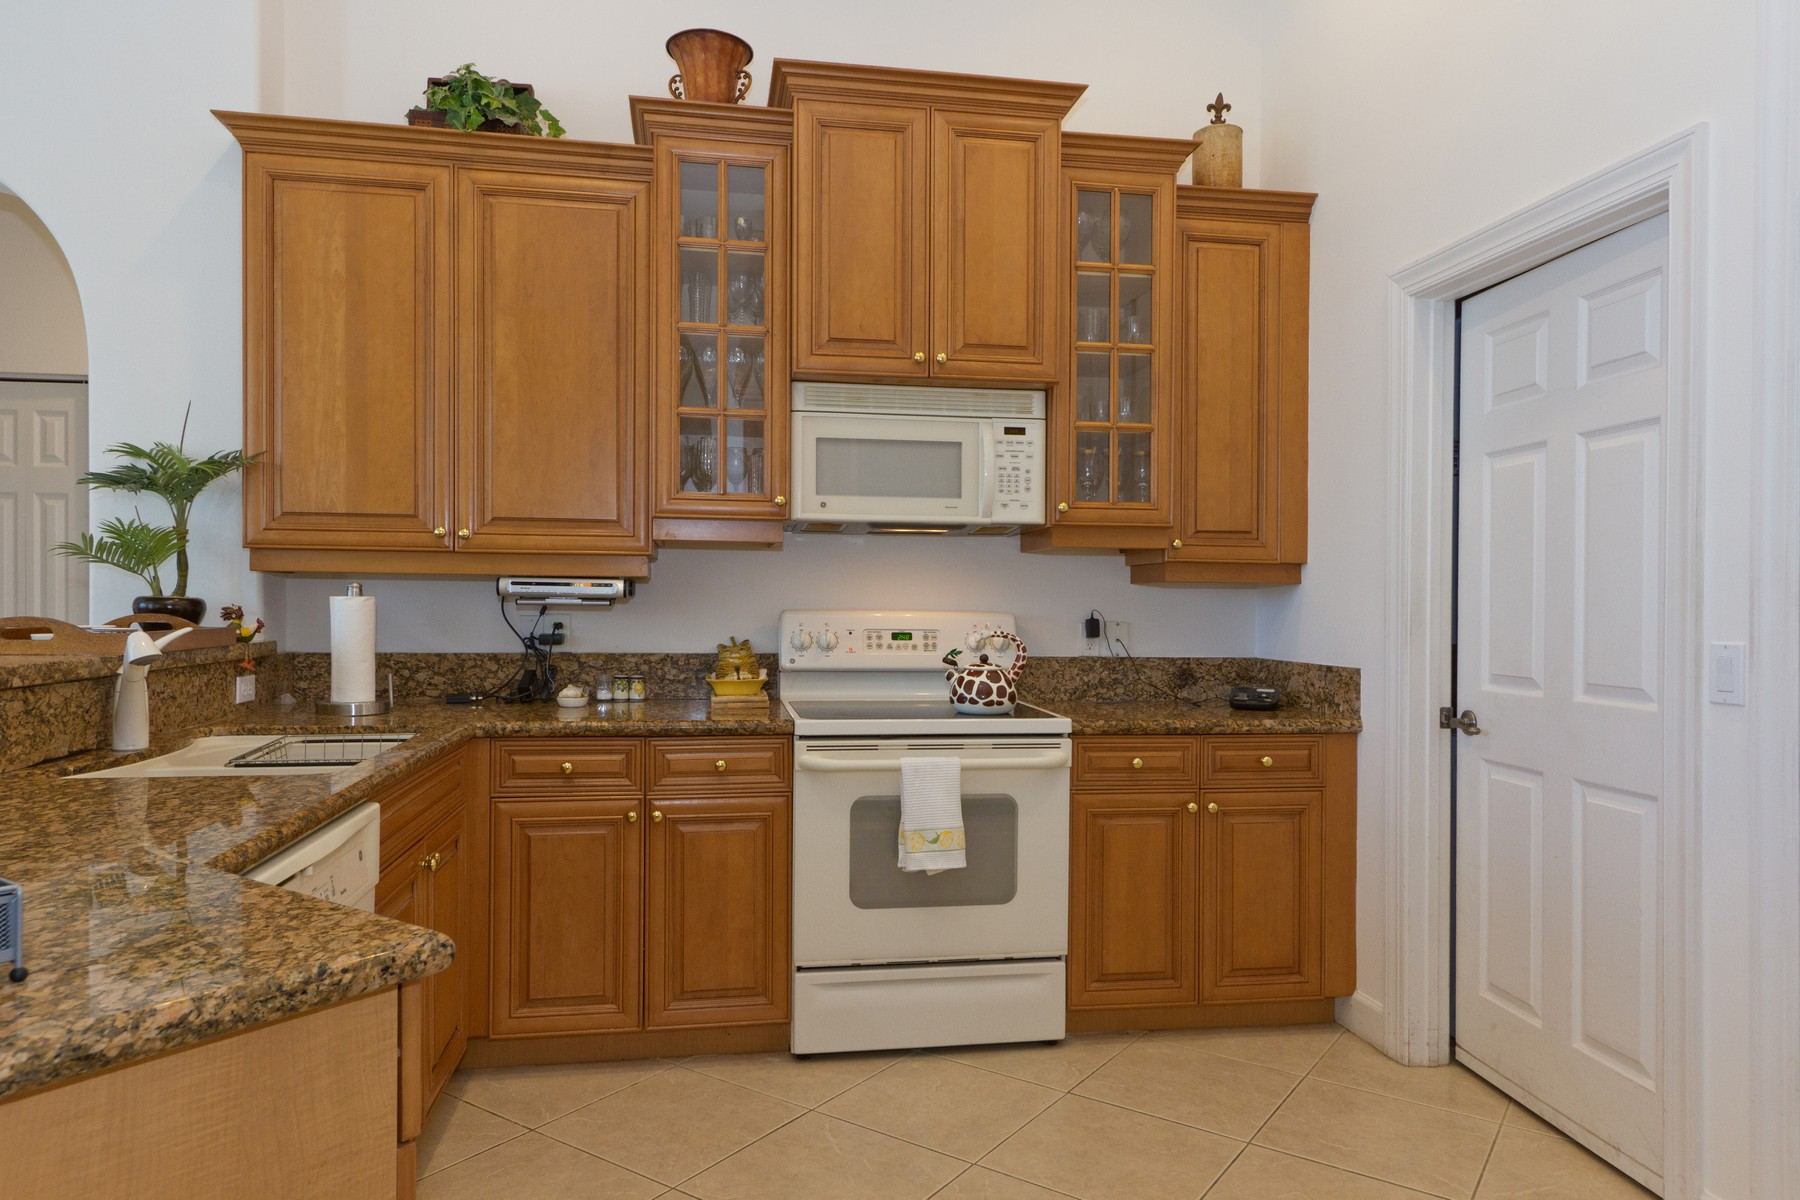 Additional photo for property listing at Grand Lakeside Pool Home 4156 Abington Woods Circle Vero Beach, Florida 32967 United States